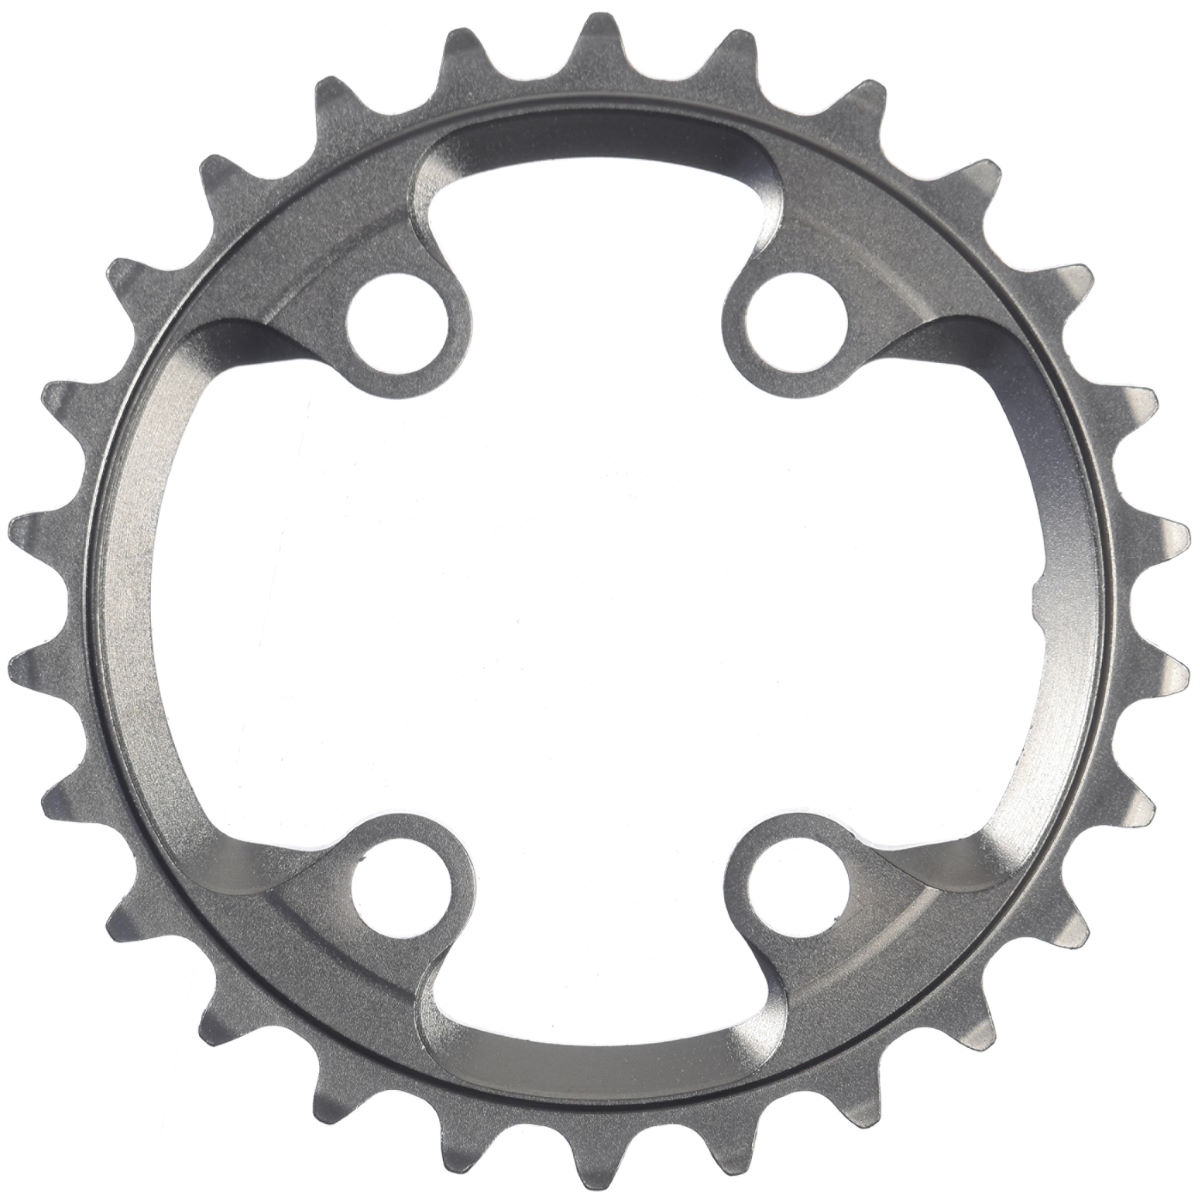 Shimano Xtr Fcm9000-m9020 11sp Double Chainrings - 26t 11 Speed Double